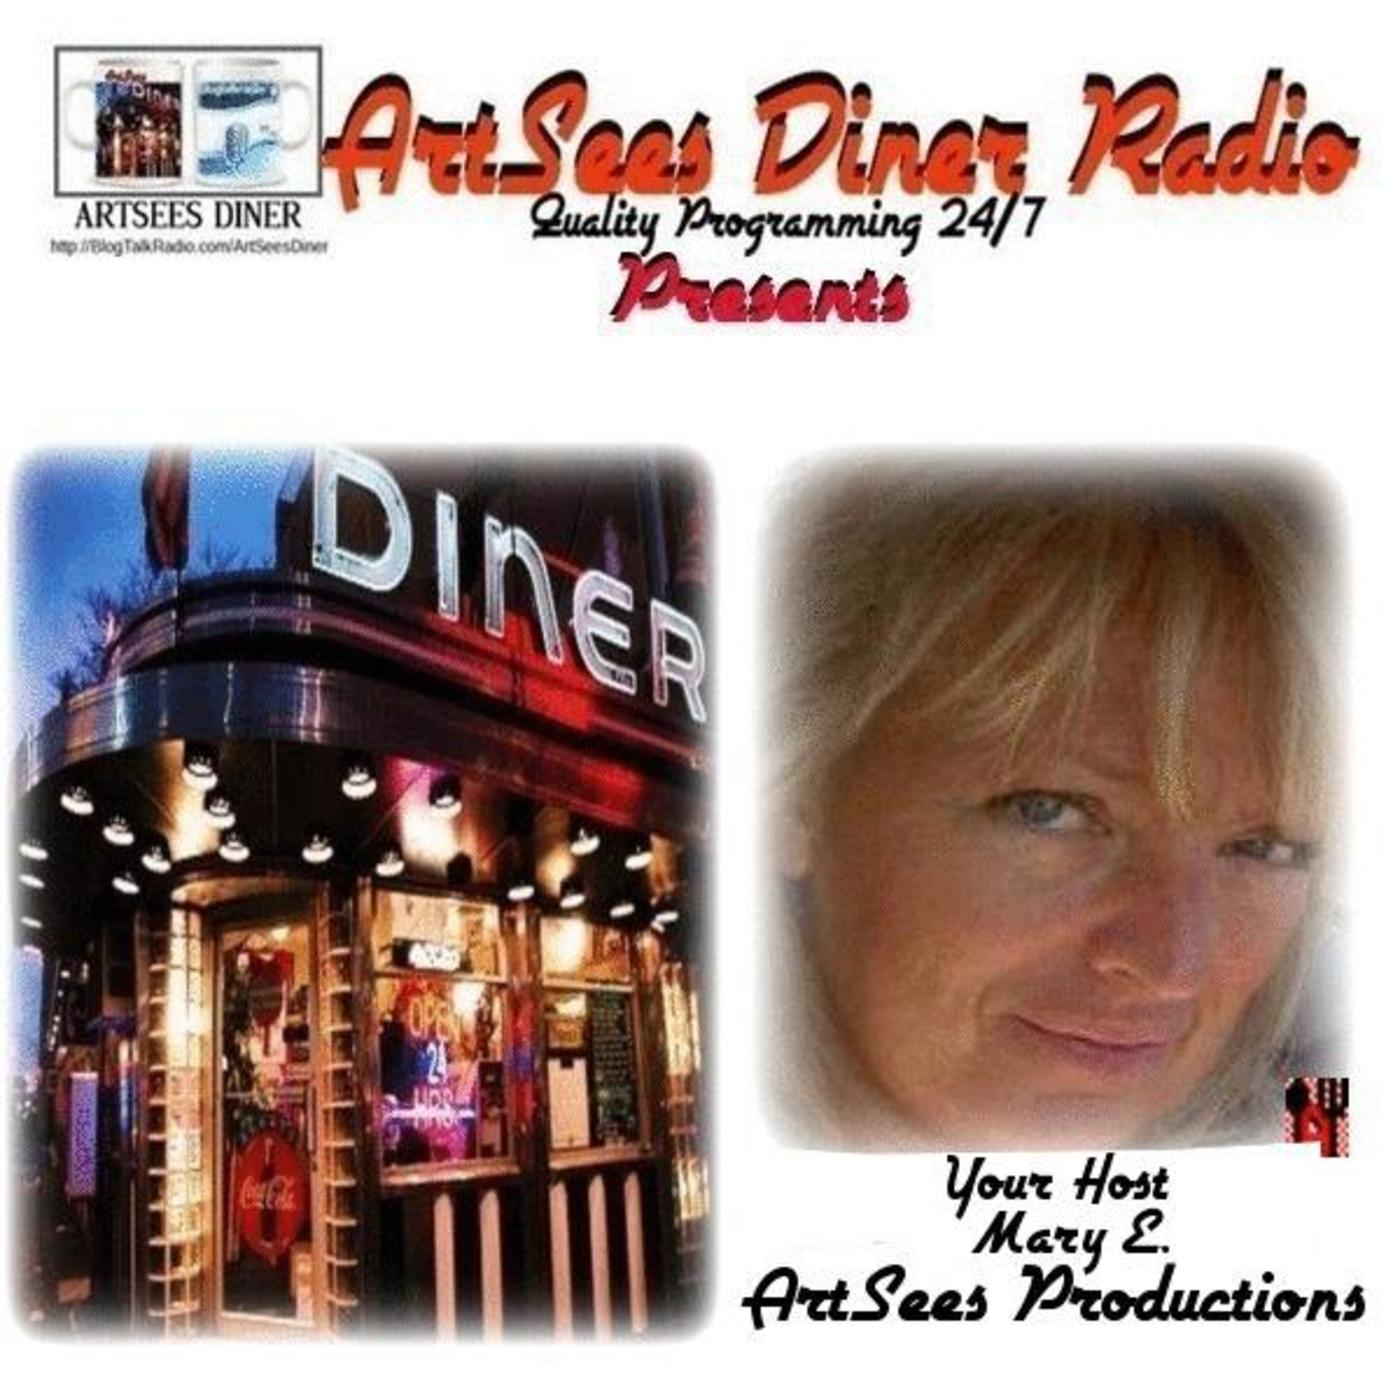 ArtSees Diner Radio